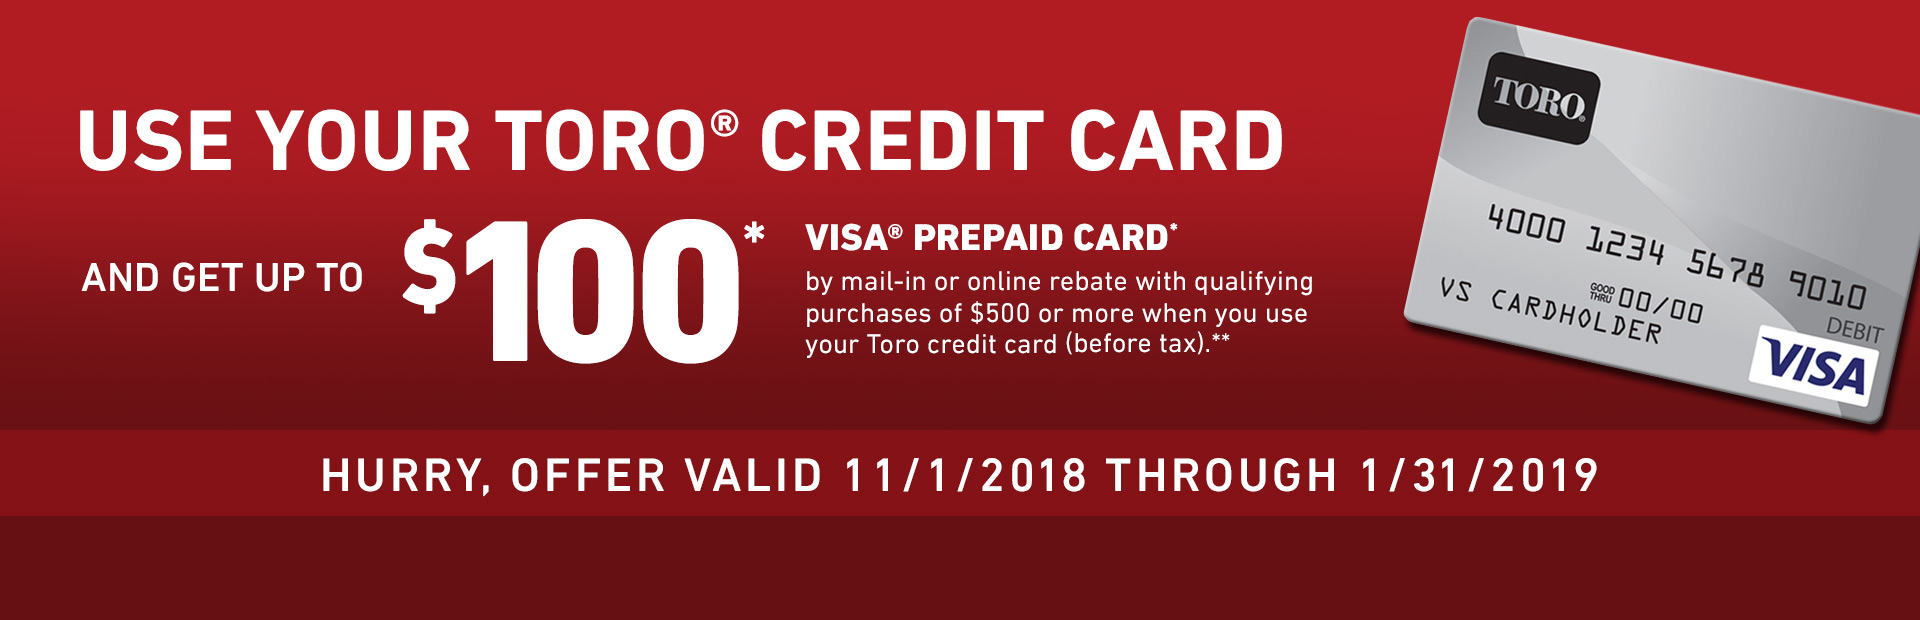 Toro: Toro Credit Card Rebate Offer